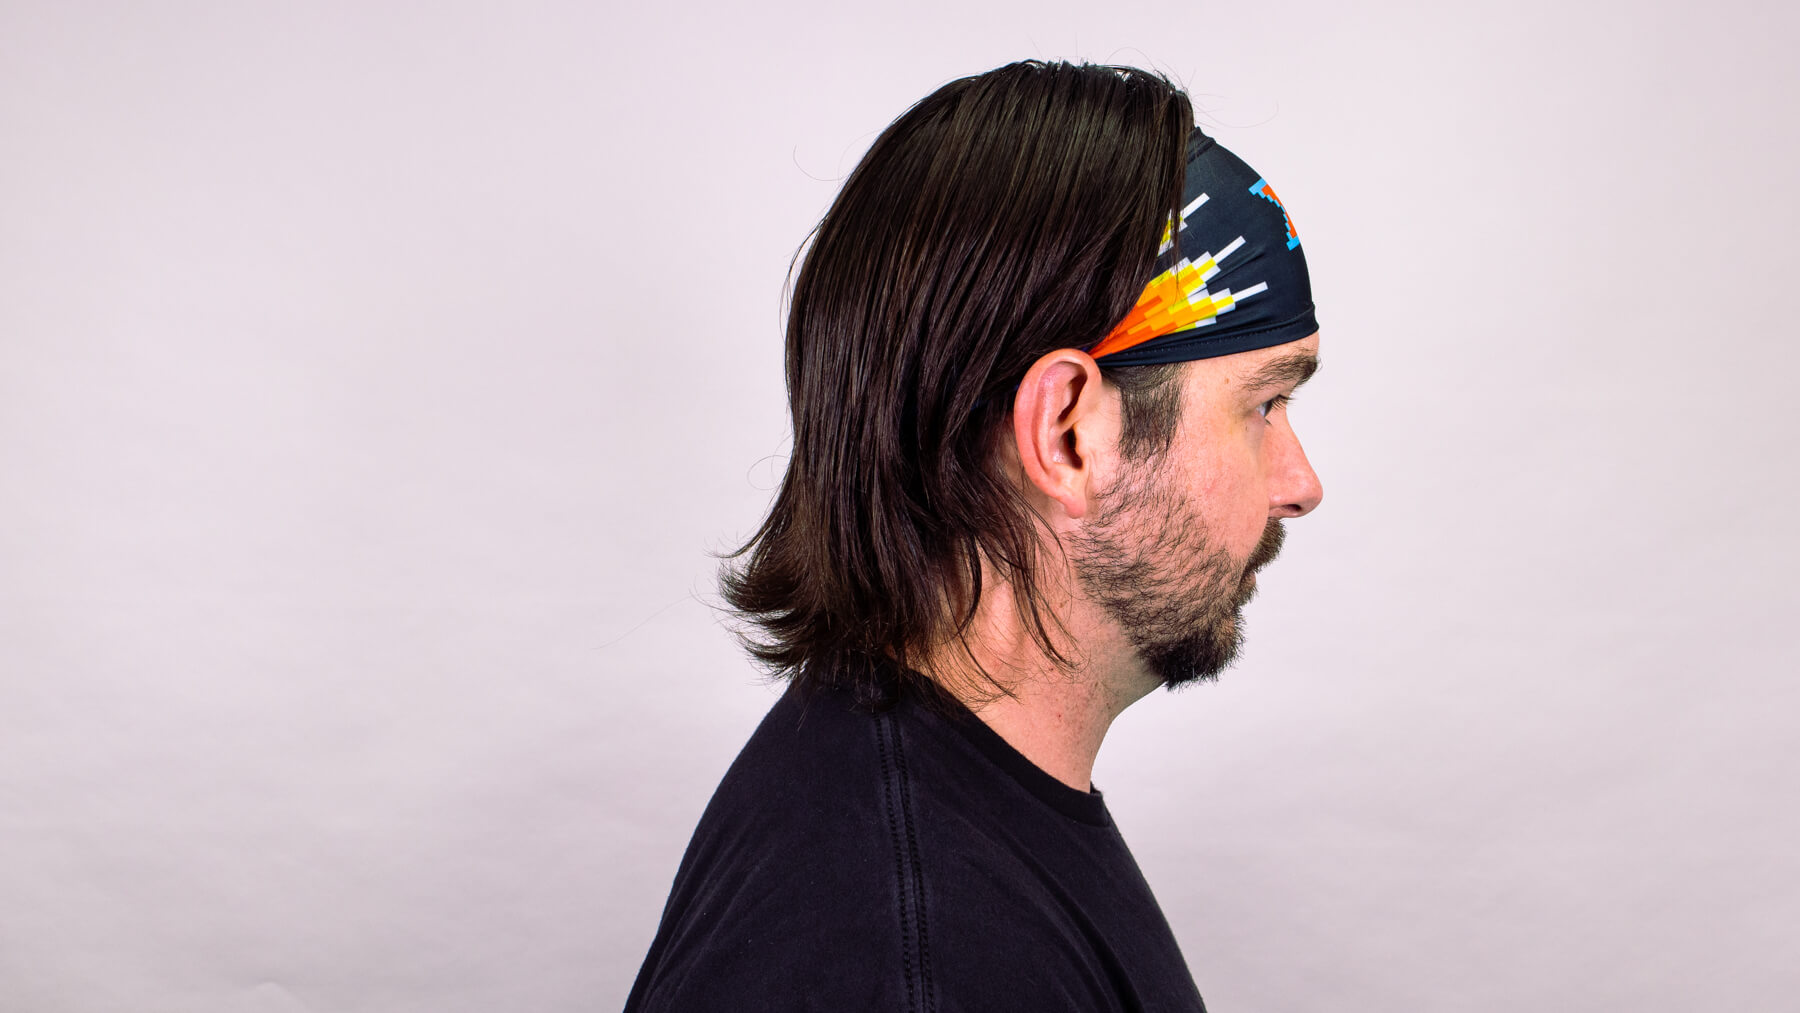 Headwrap with awkward stage hairstyle side profile view